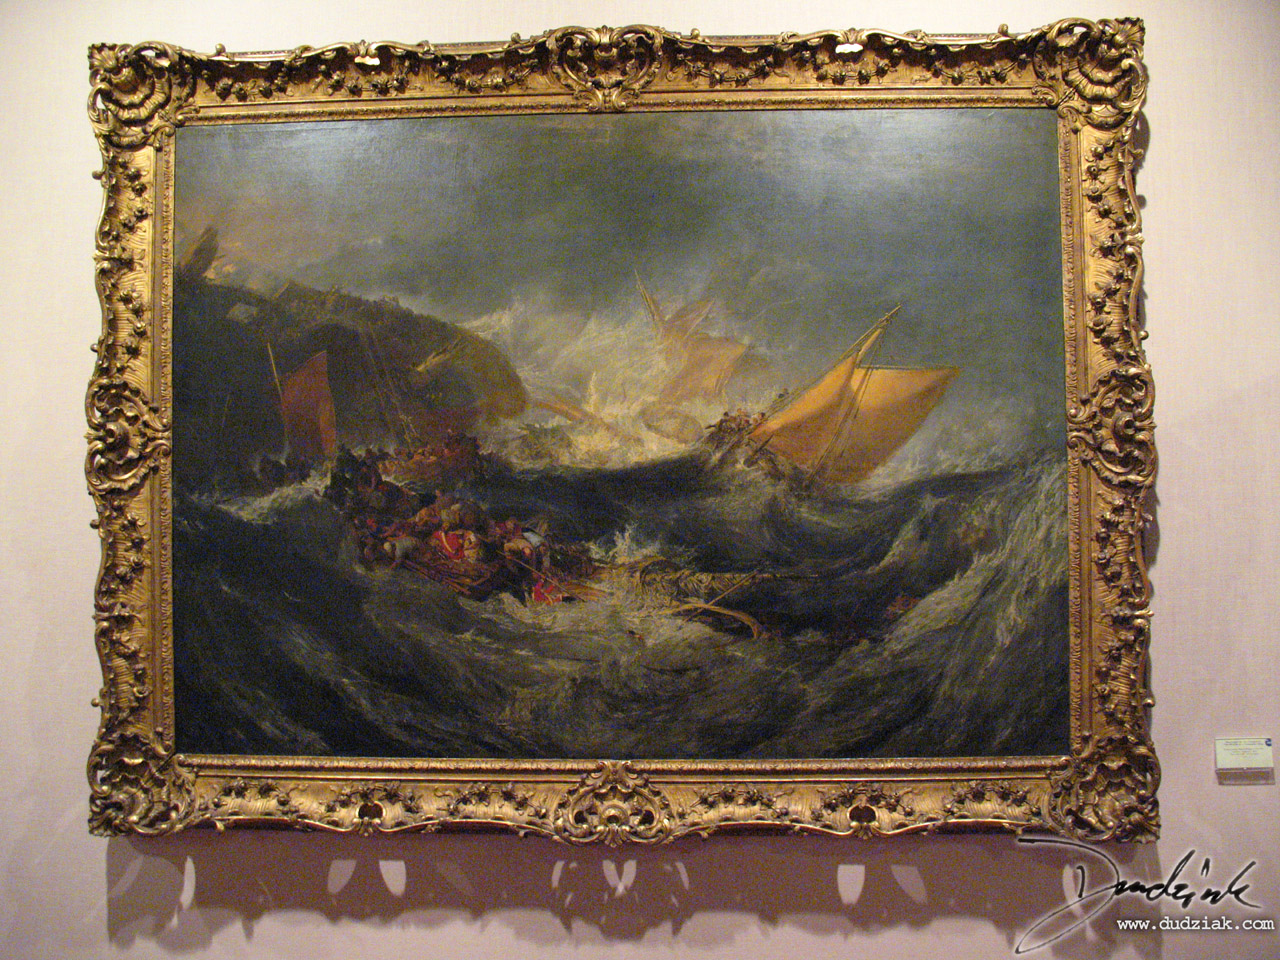 Calouste Gulbenkian Museum,  Museu Calouste Gulbenkian,  Lisboa,  Joseph Mallord William Turner,  Lisbon Portugal,  The Wreck of a Transport Ship